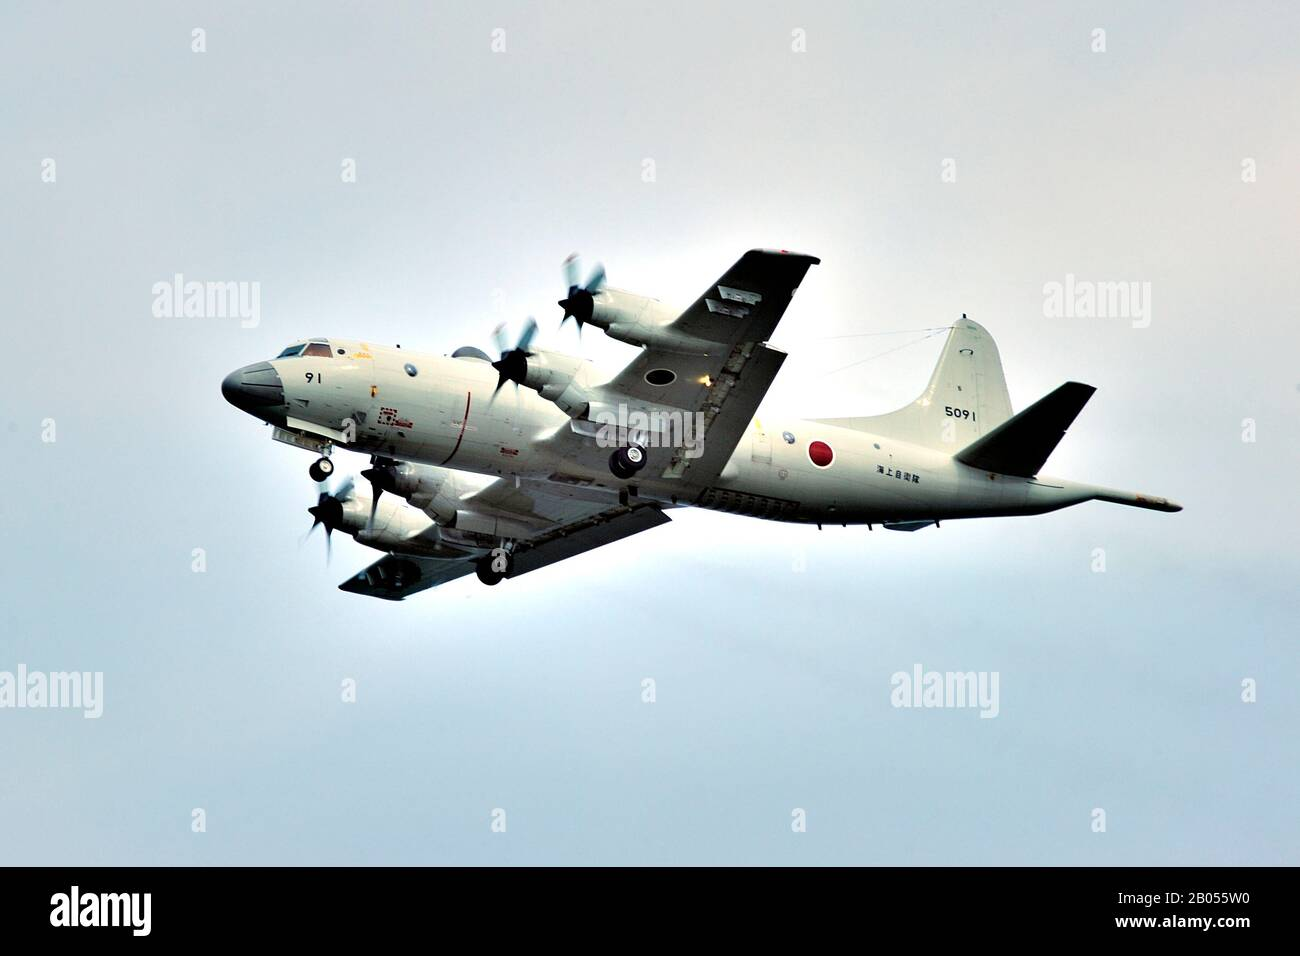 JSDF Kawasaki P-3C Orion Airplane, Landing, Naha Airport, Okinawa, Ryukyo Islands, Japan Stock Photo